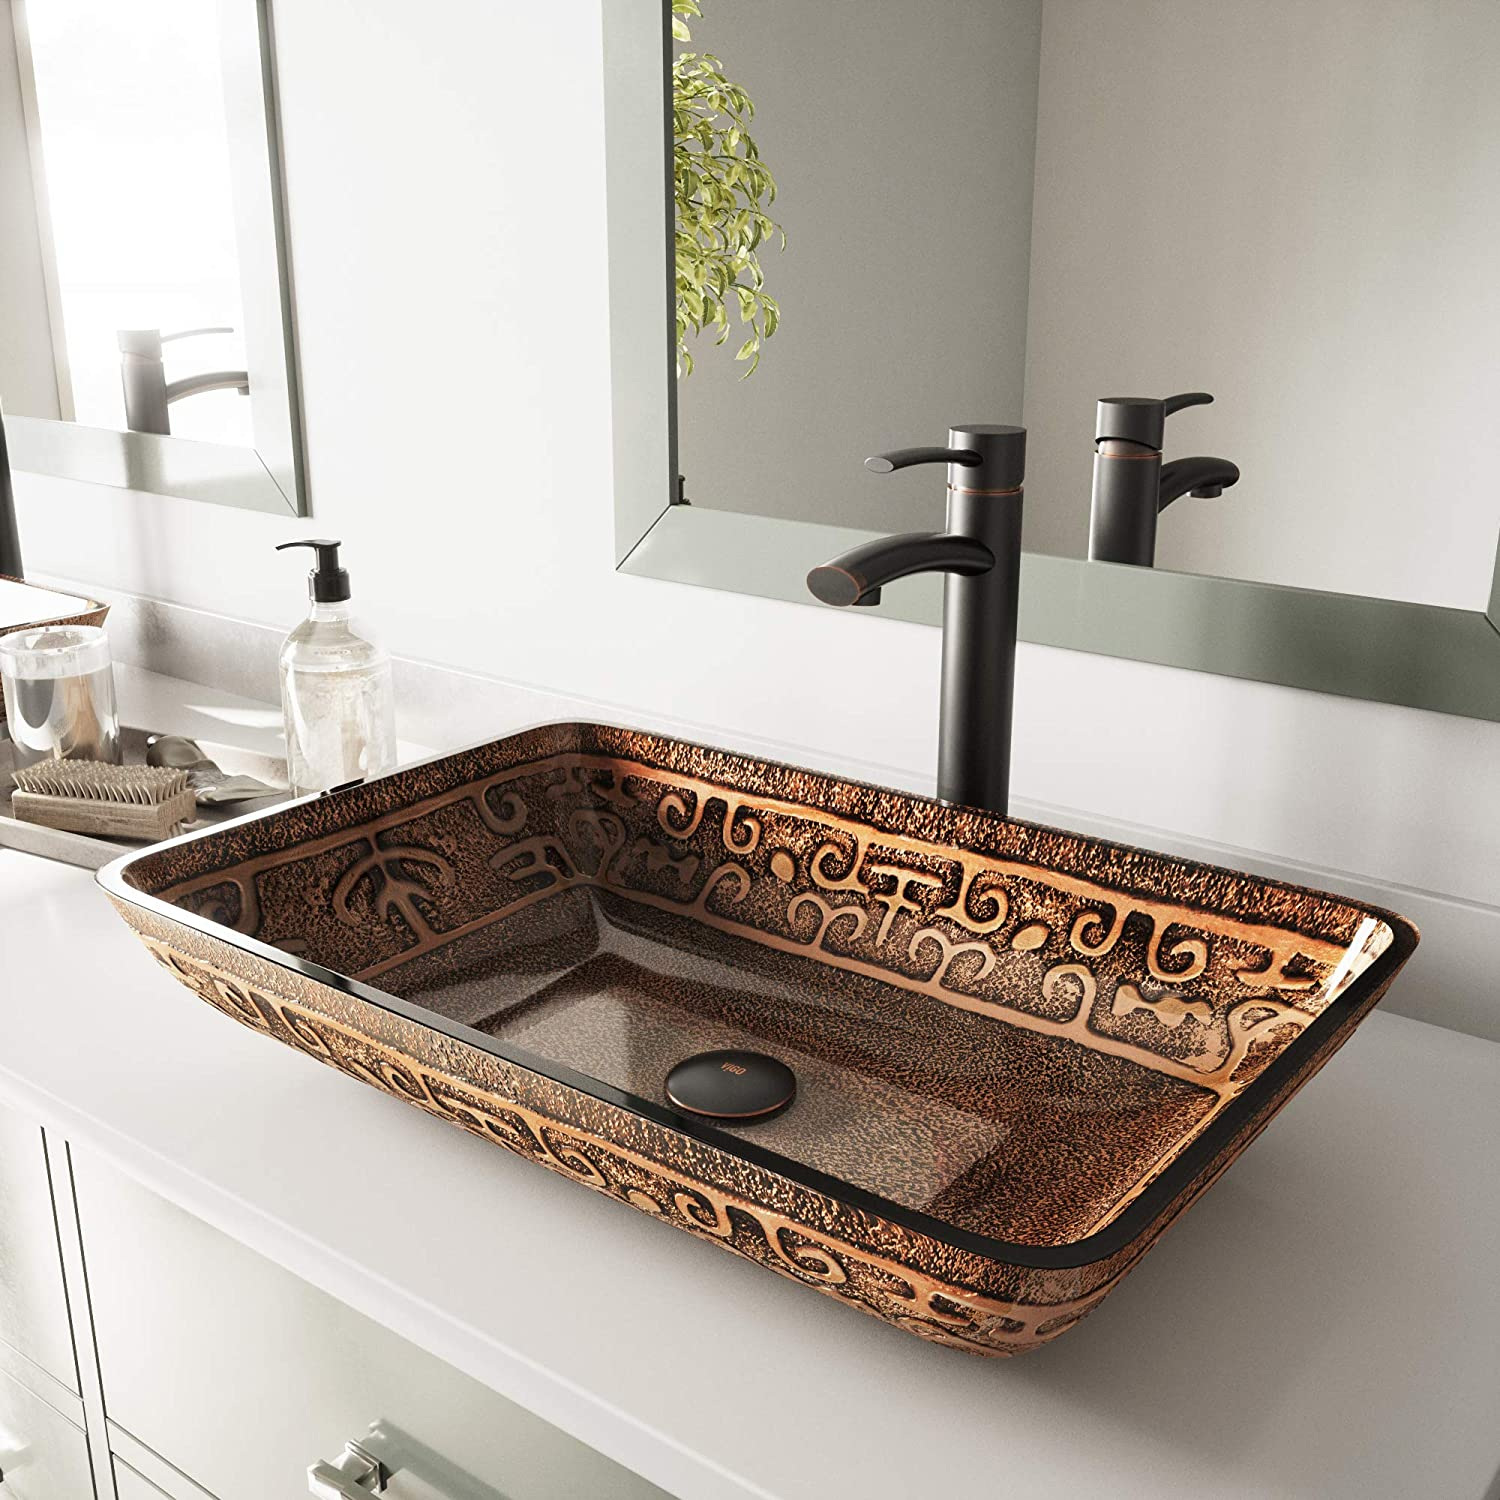 VIGO Rectangular Golden Greek Glass Vessel Bathroom Sink and Milo Vessel Faucet with Pop Up, Antique Rubbed Bronze